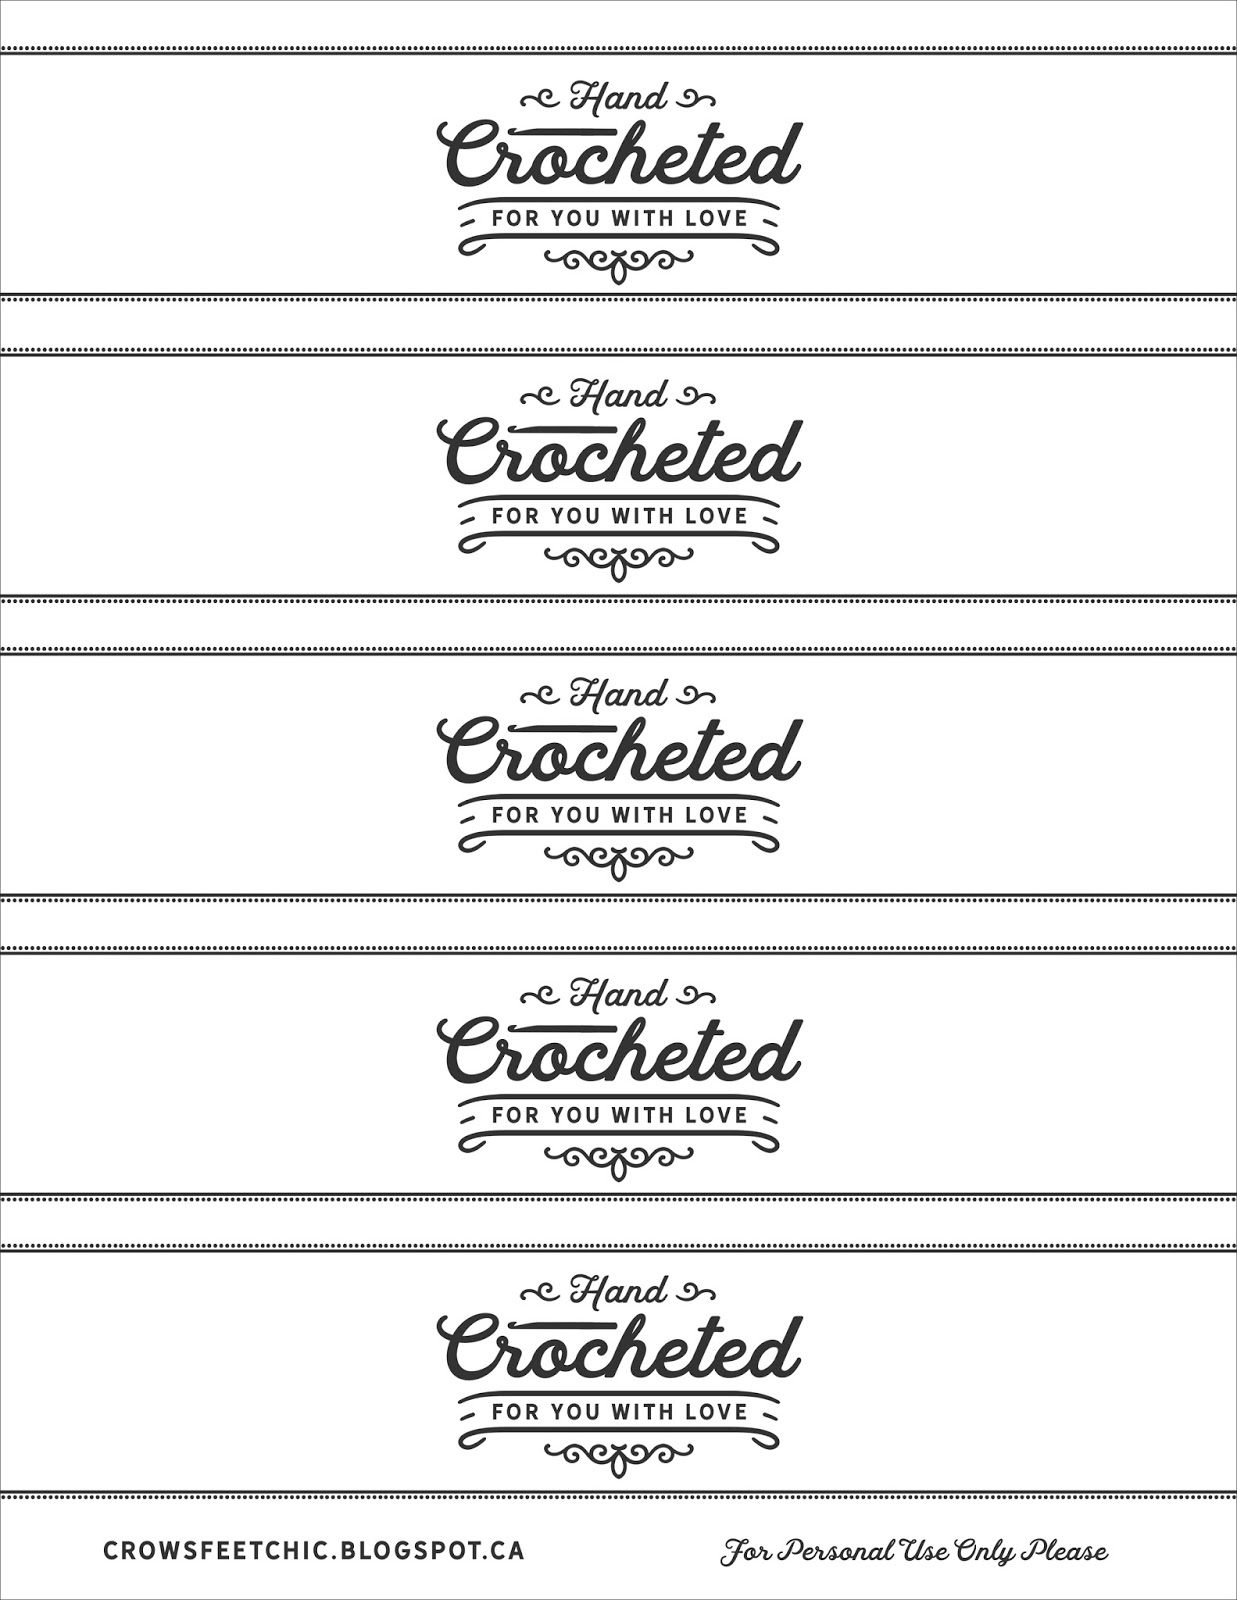 crochet gift labels free printable crow 39 s feet chic. Black Bedroom Furniture Sets. Home Design Ideas